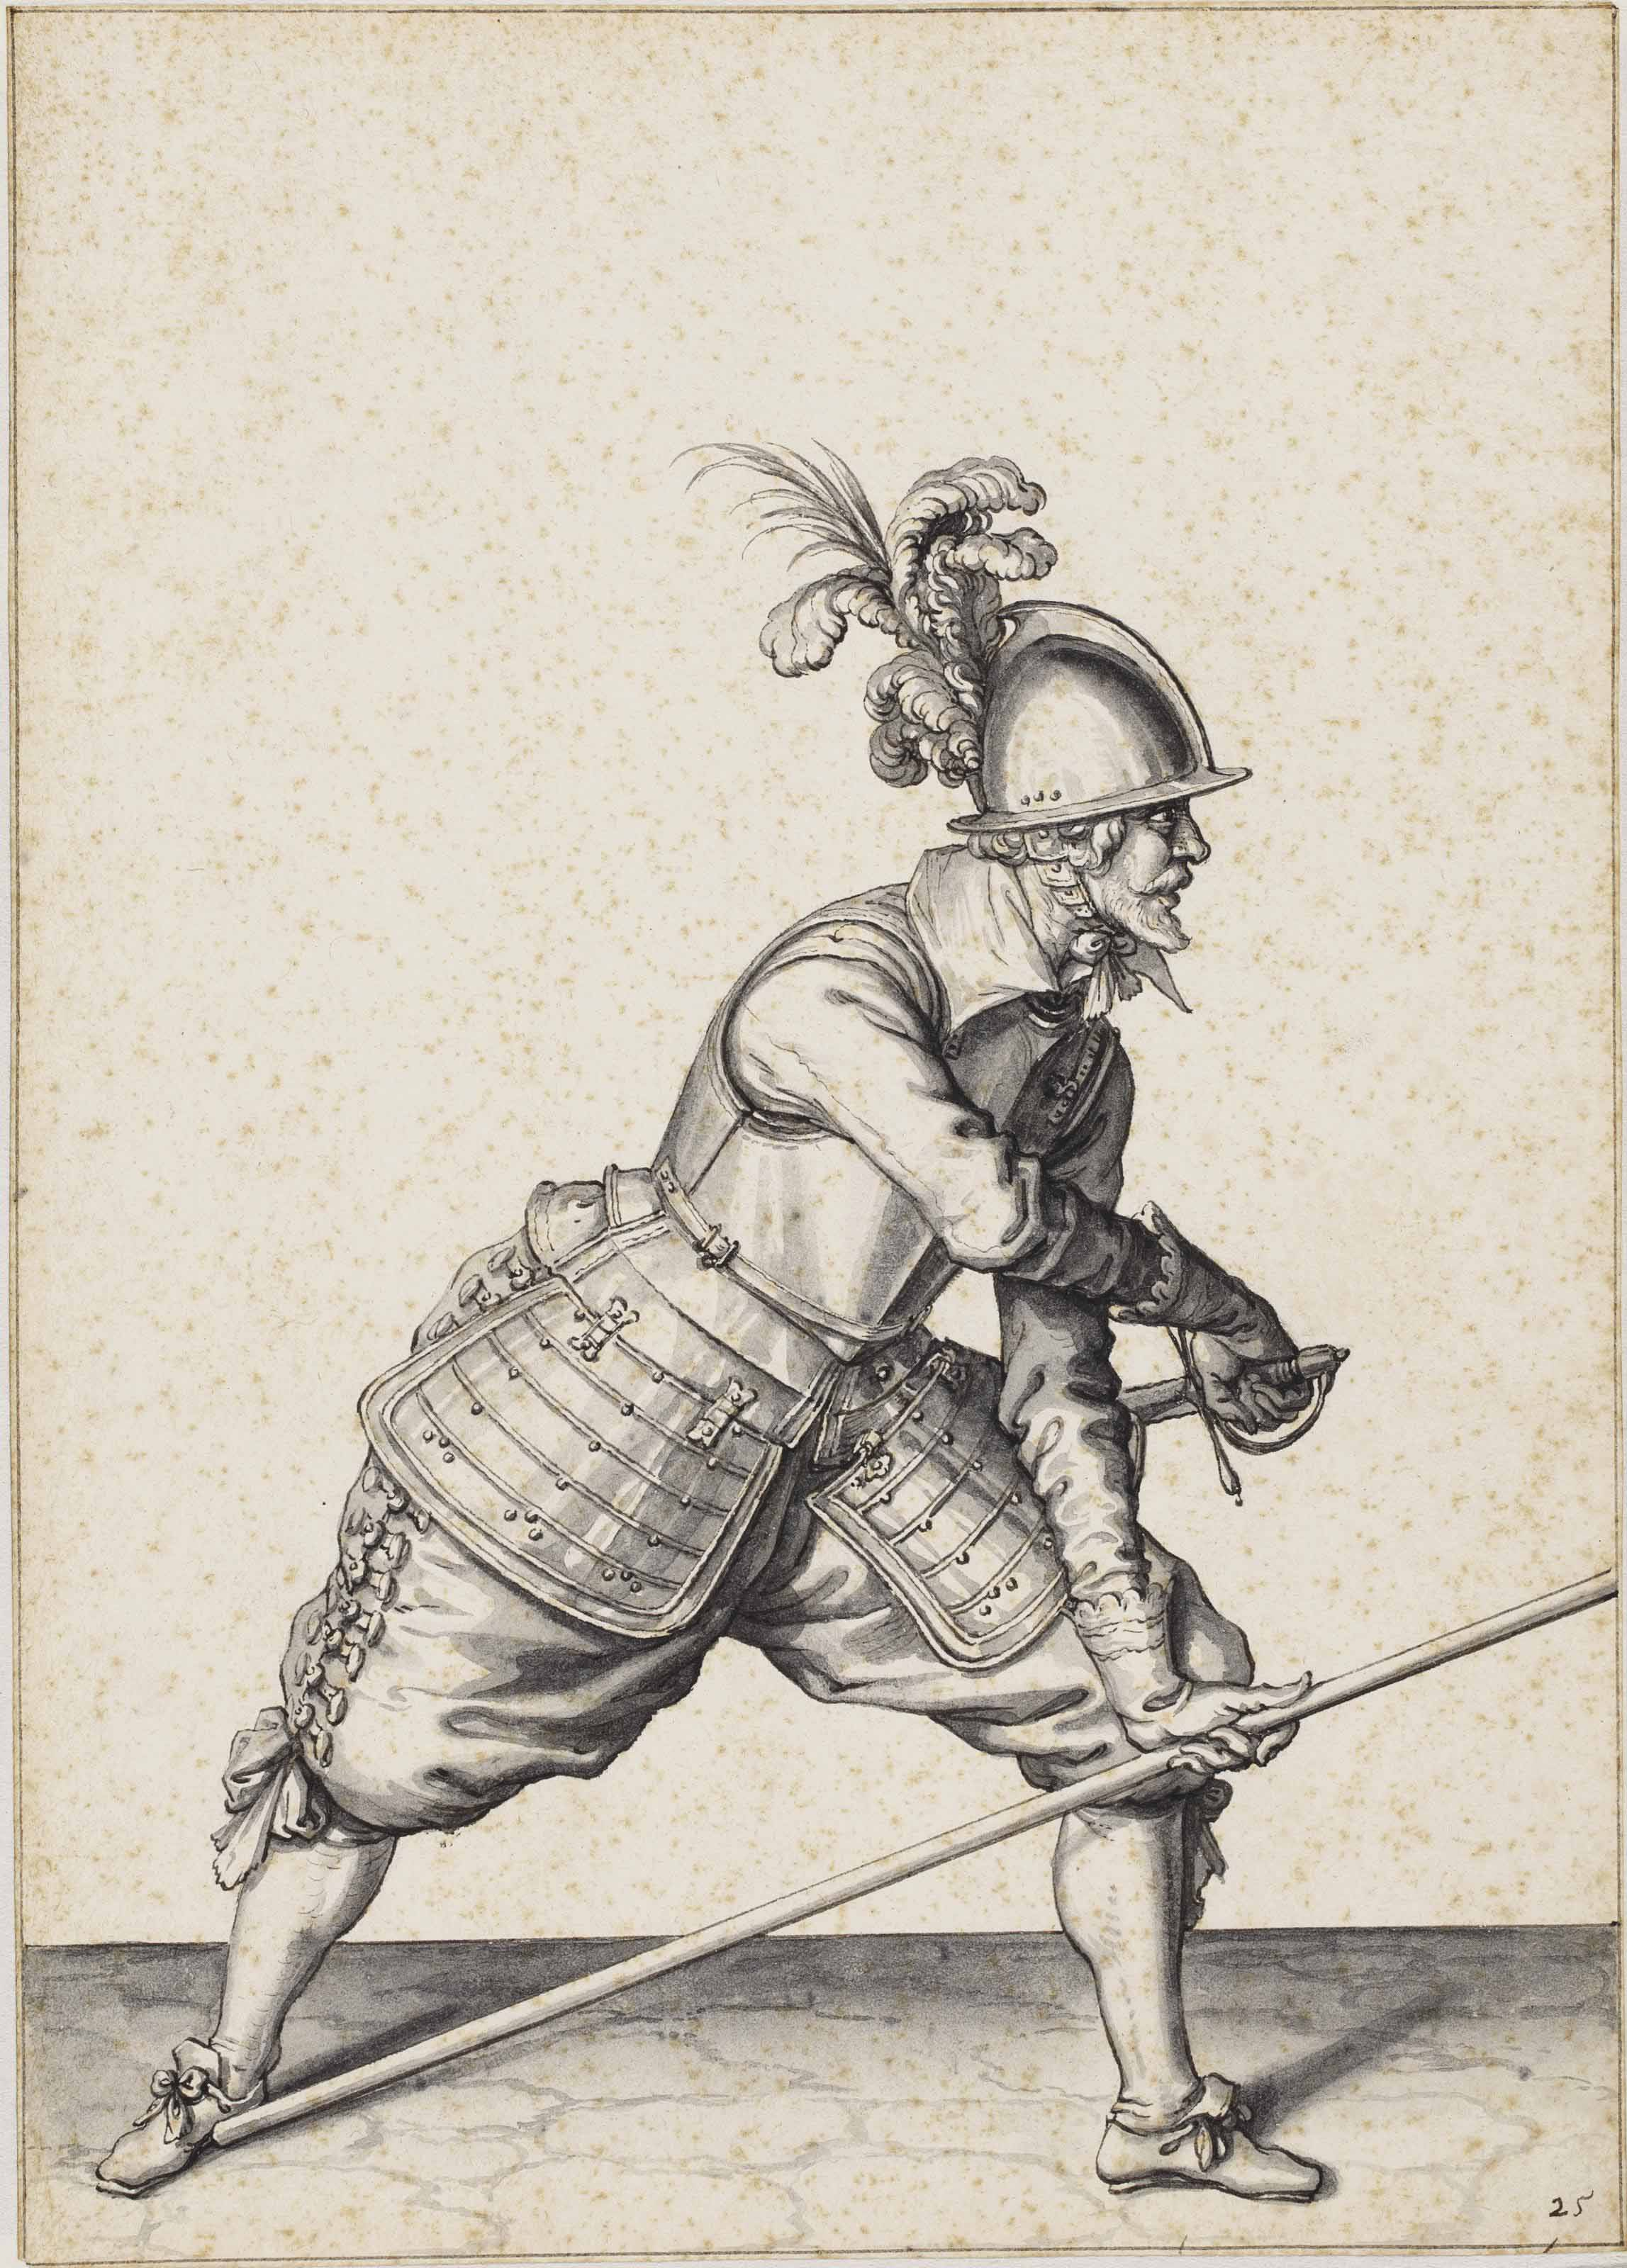 The Exercise of Armes: 'Charge your pike at the right foote and draw your sword'